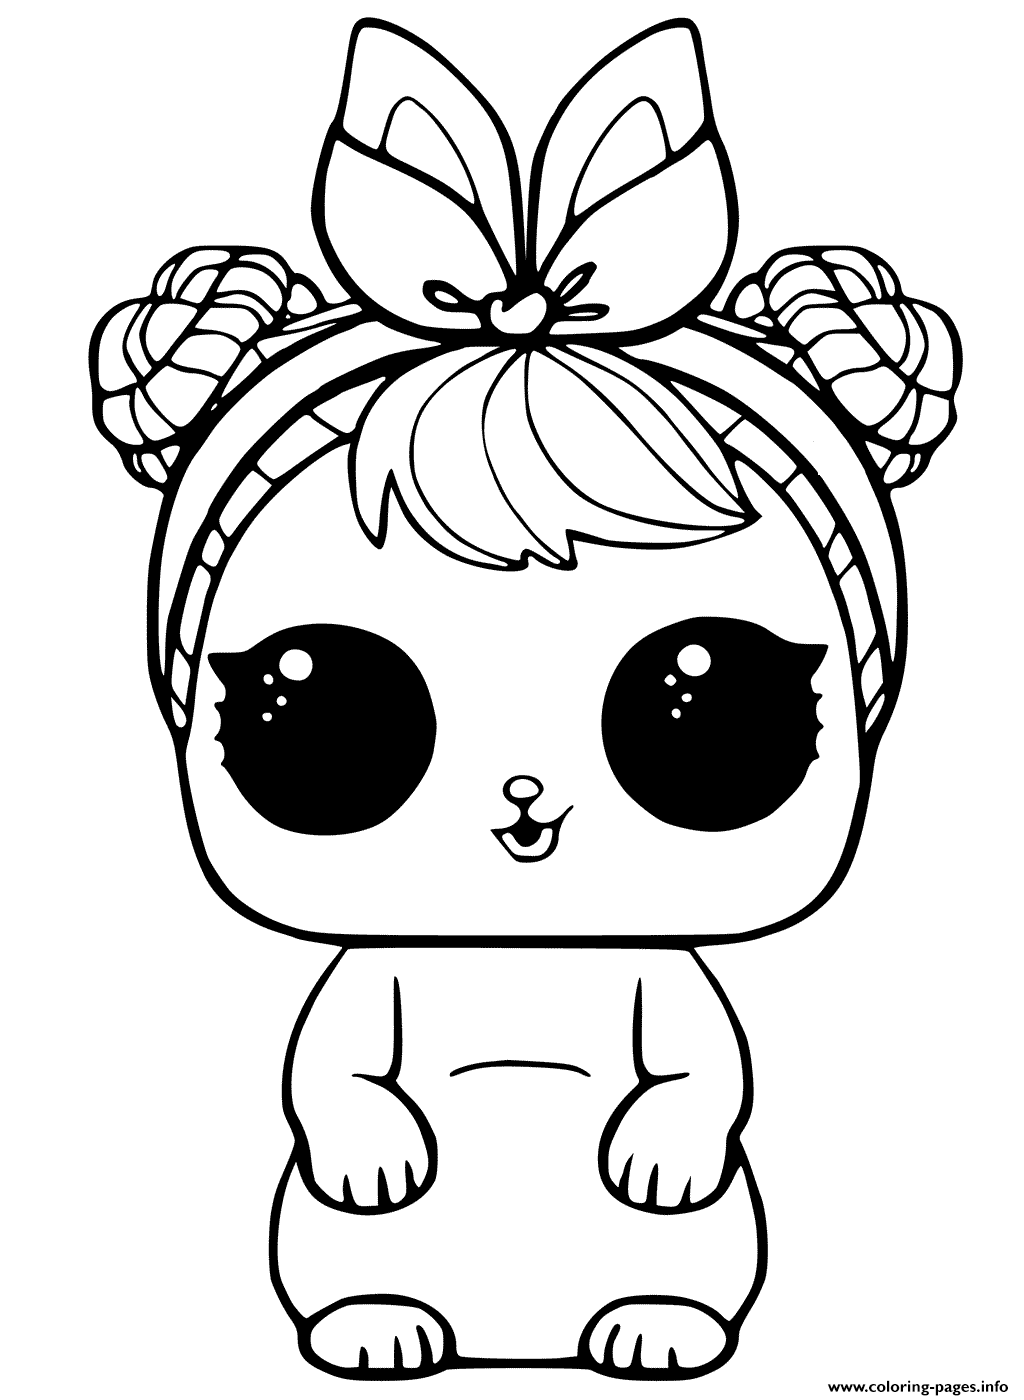 Print Lol Pets Coloring Pages Coloring Pages Unicorn Coloring Pages Lol Dolls